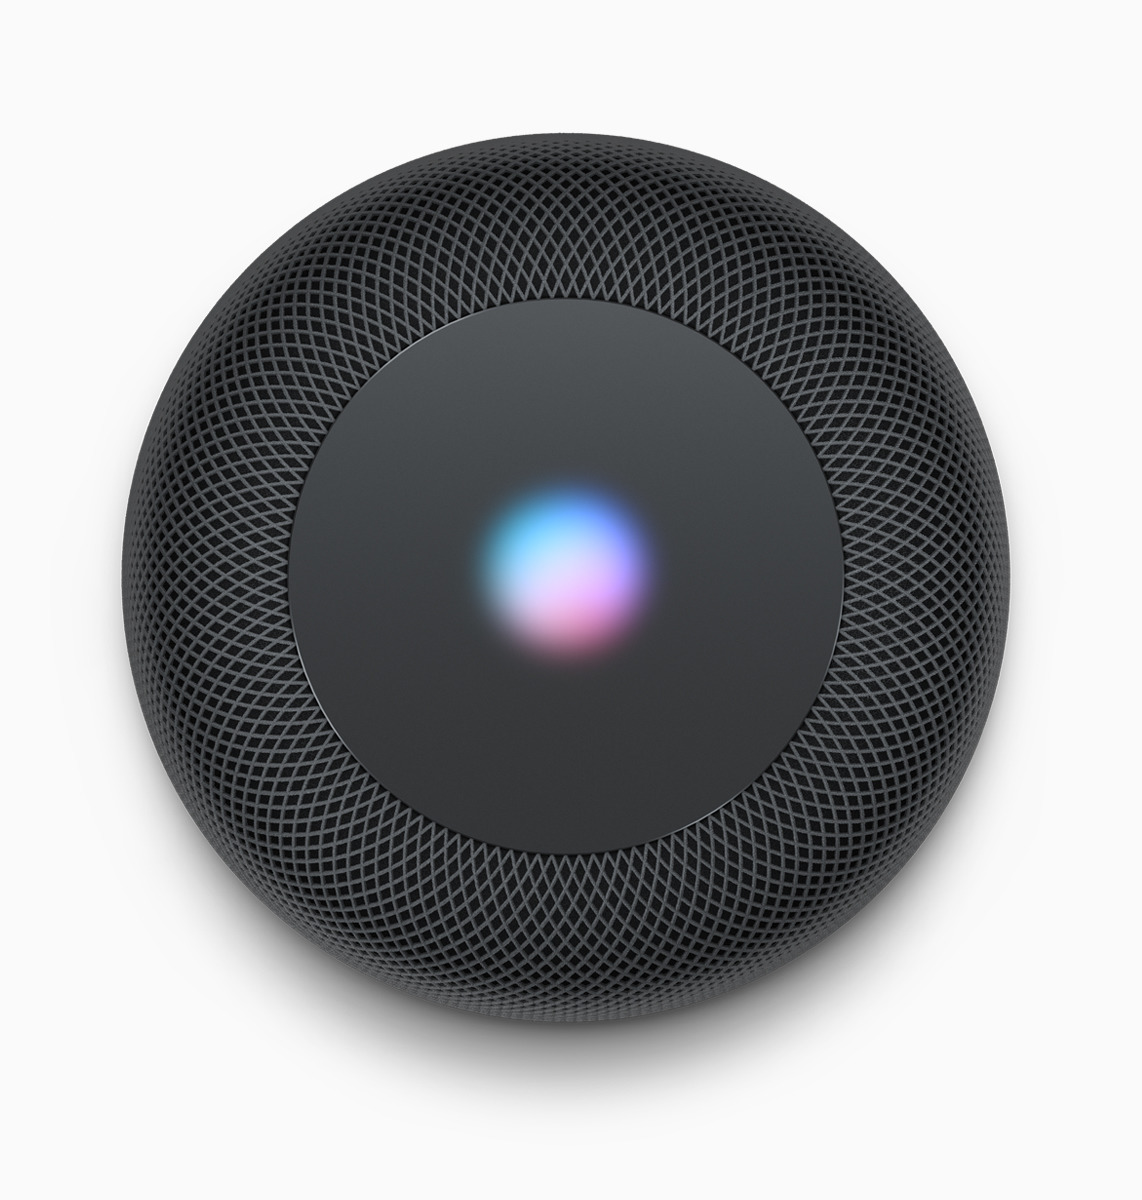 The light on top of the HomePod gives you the status of Siri and activity